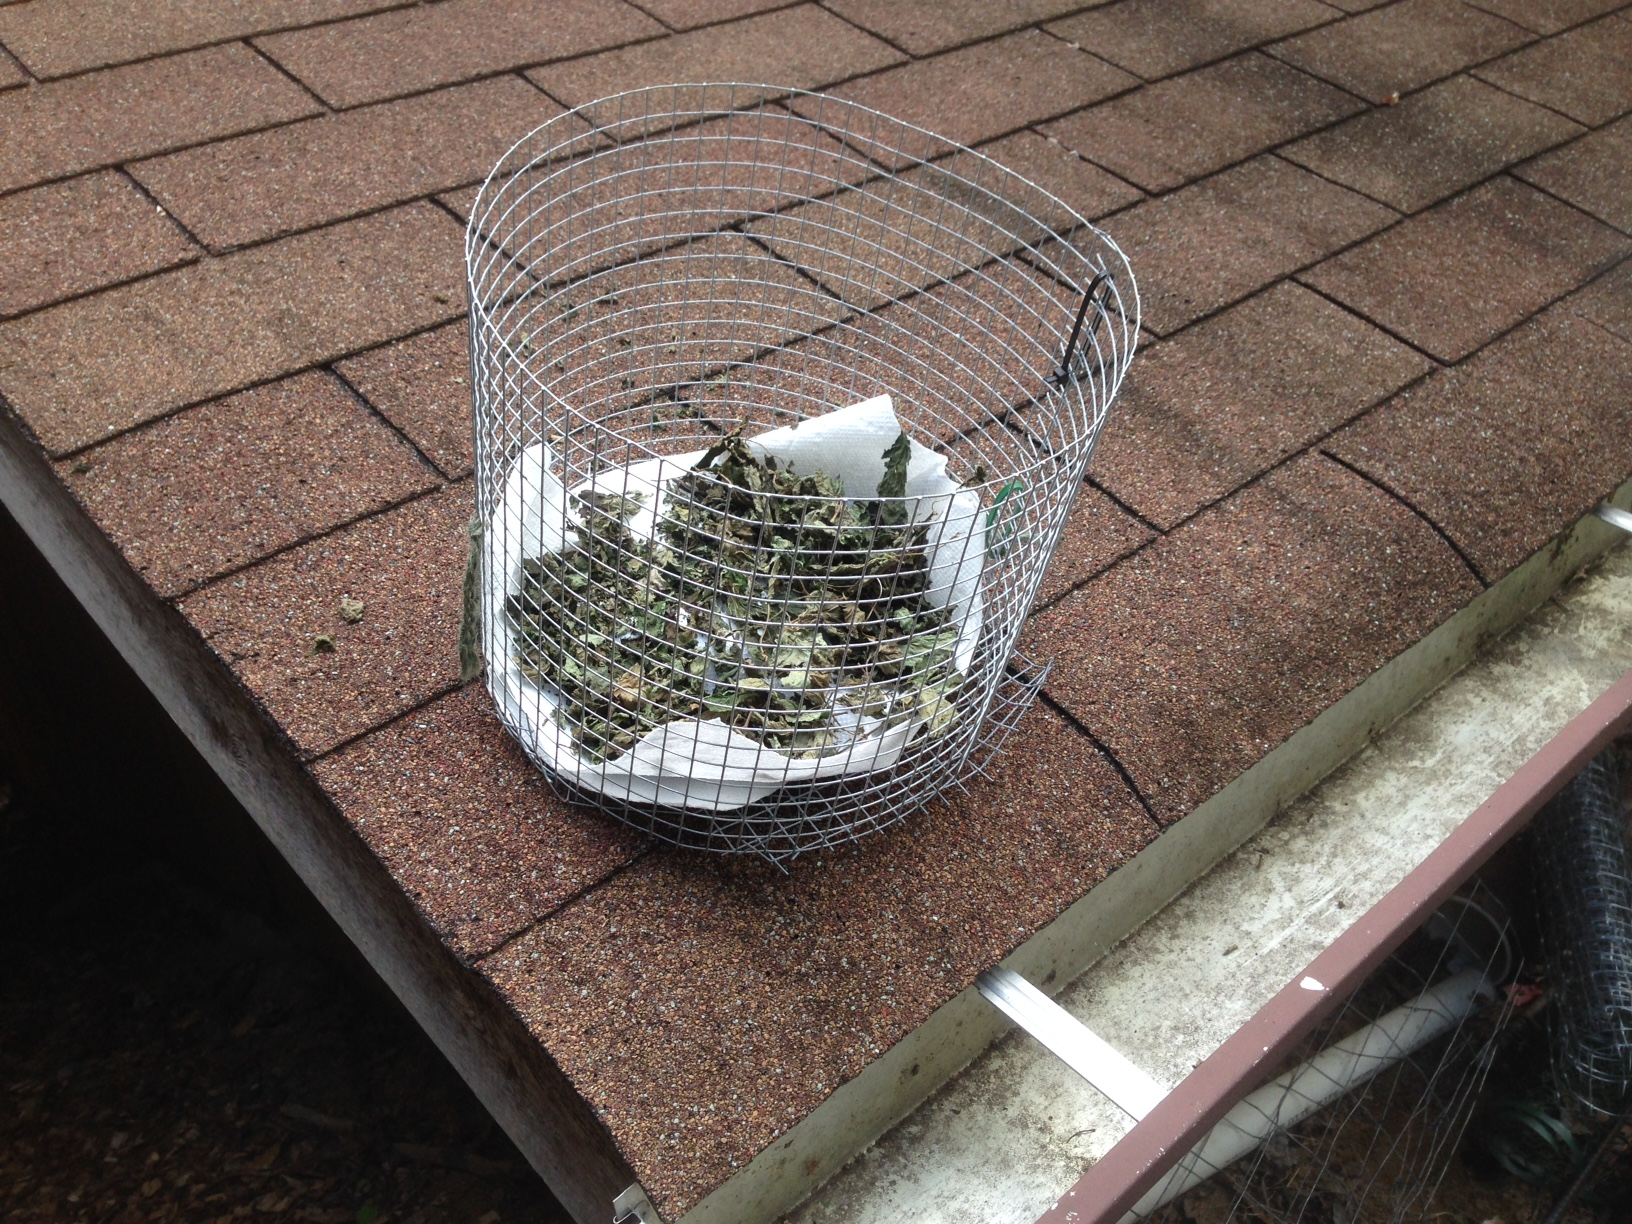 SUN DRYING HERBS IS EASY: We just tossed some into a homemade mesh basket and sat this lemon balm on a low-roof top and it dried within a few hours. #GardensAll #SunDriedHerbs #DryingFood #HowToDryHerbs #BestWaysToDryFood #FoodDrying